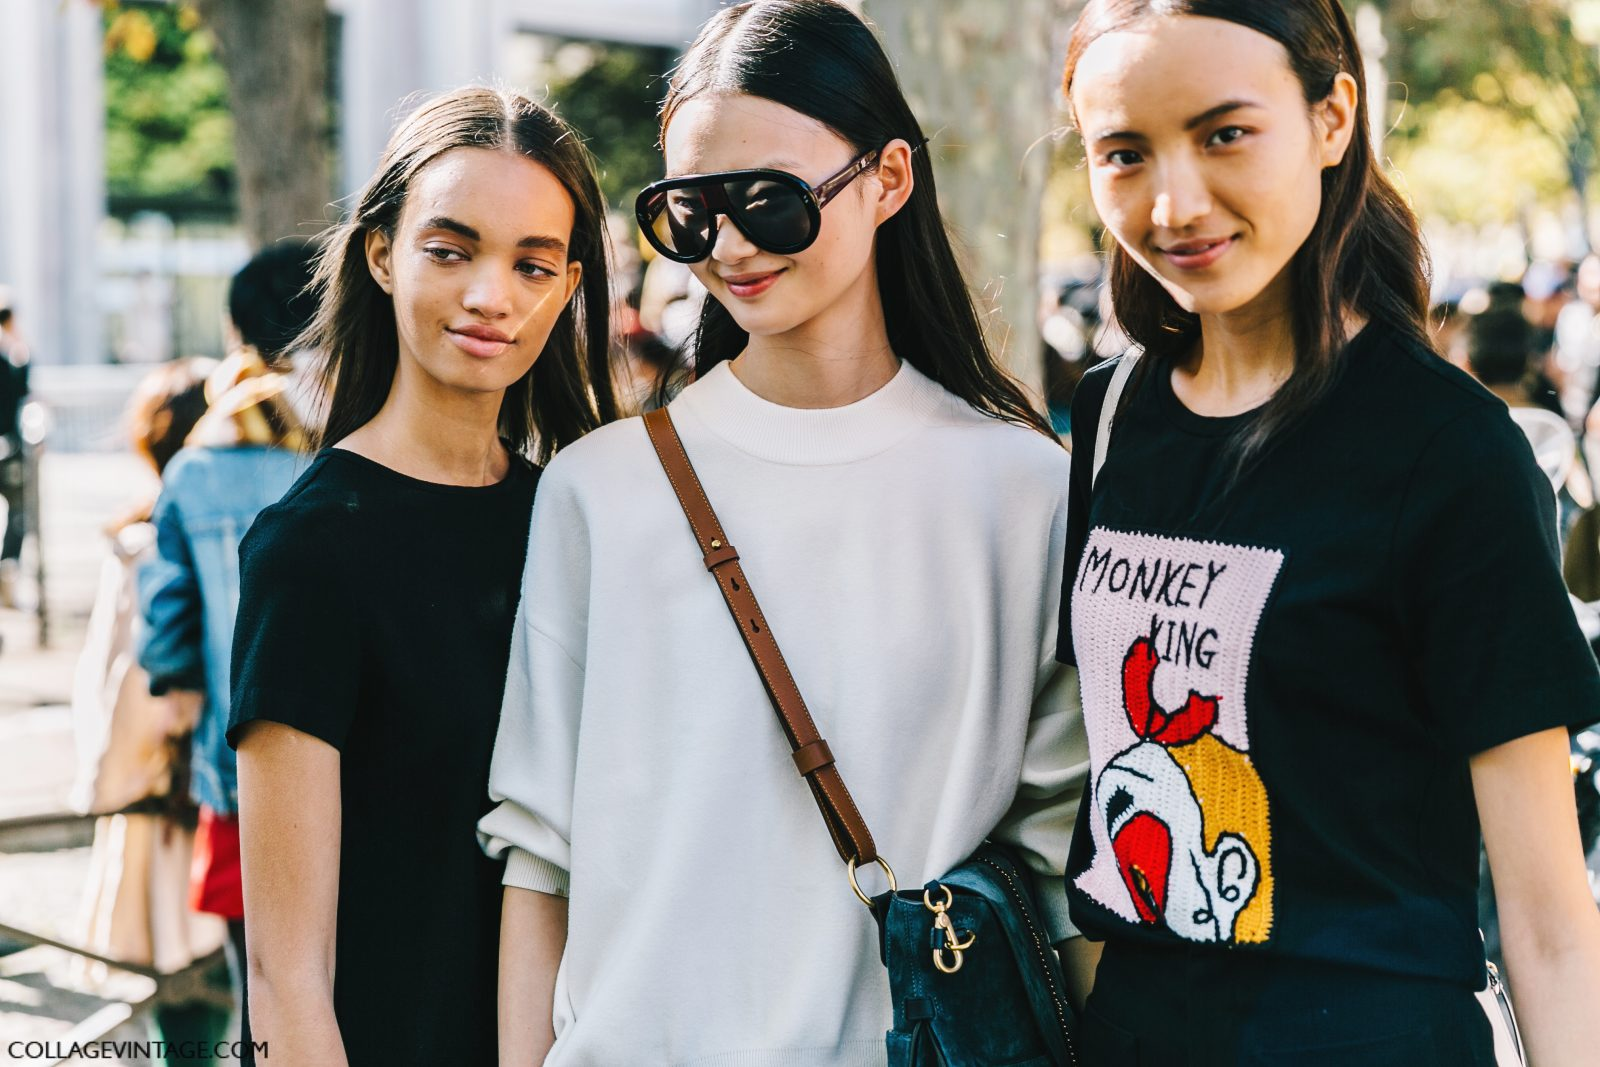 pfw-paris_fashion_week_ss17-street_style-outfit-collage_vintage-louis_vuitton-miu_miu-6